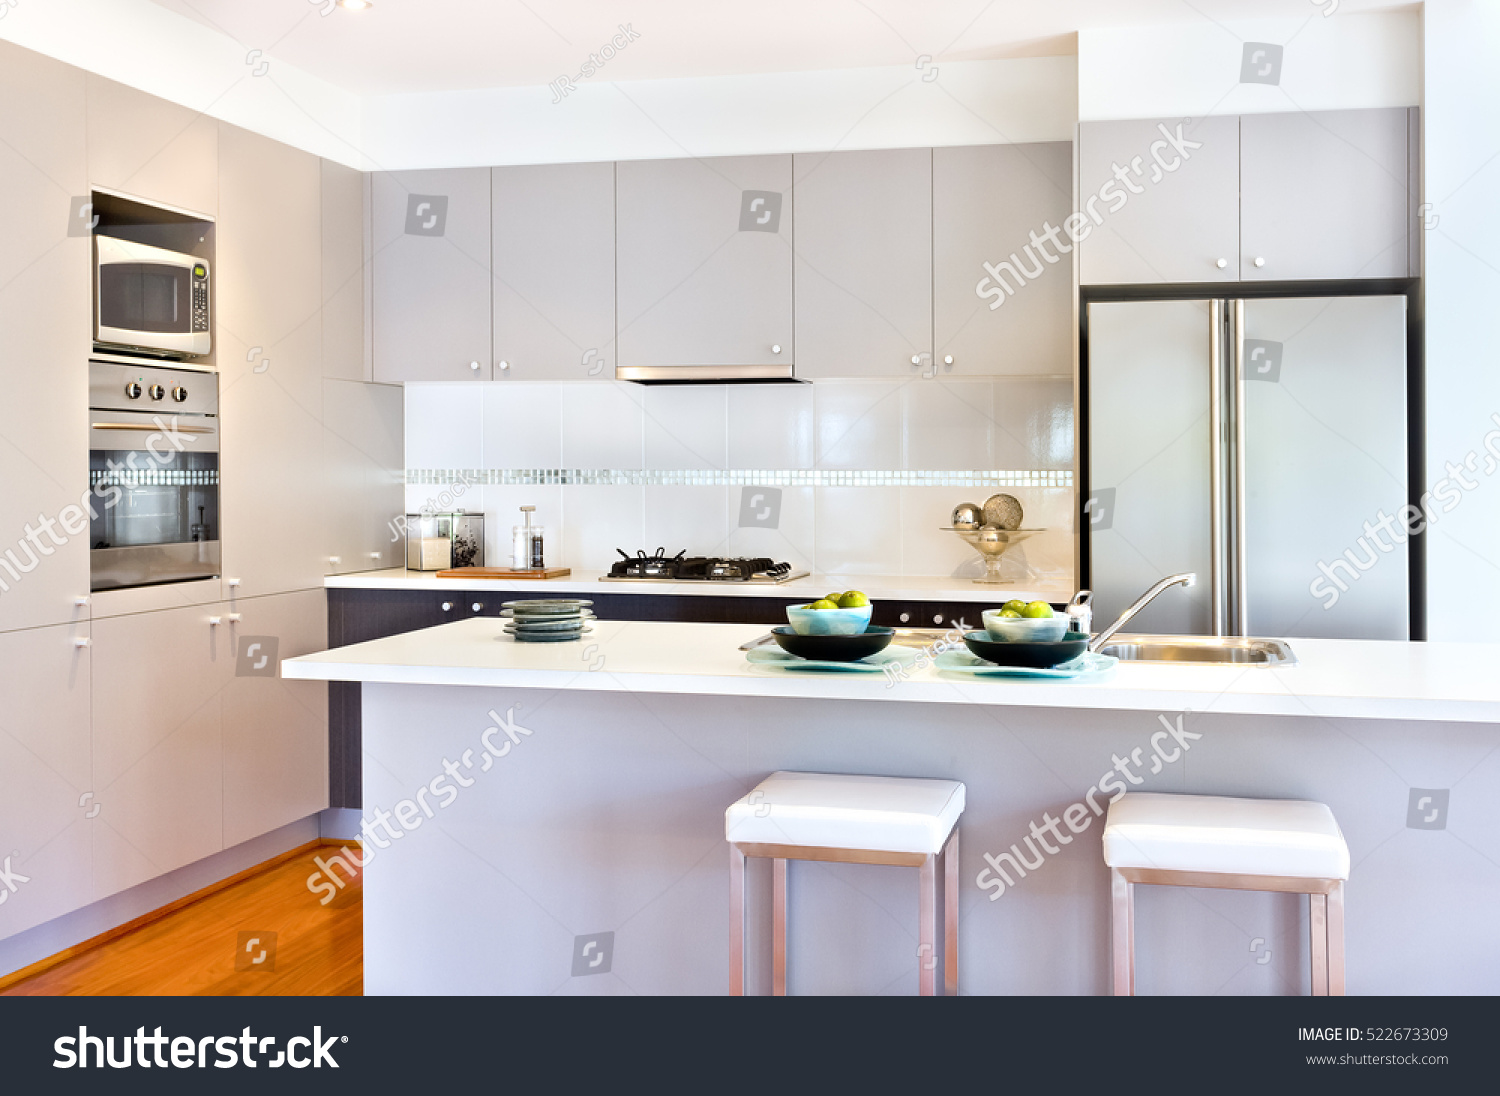 There More Wall Cabinets Pantry Cupboards Stock Photo (Royalty Free ...